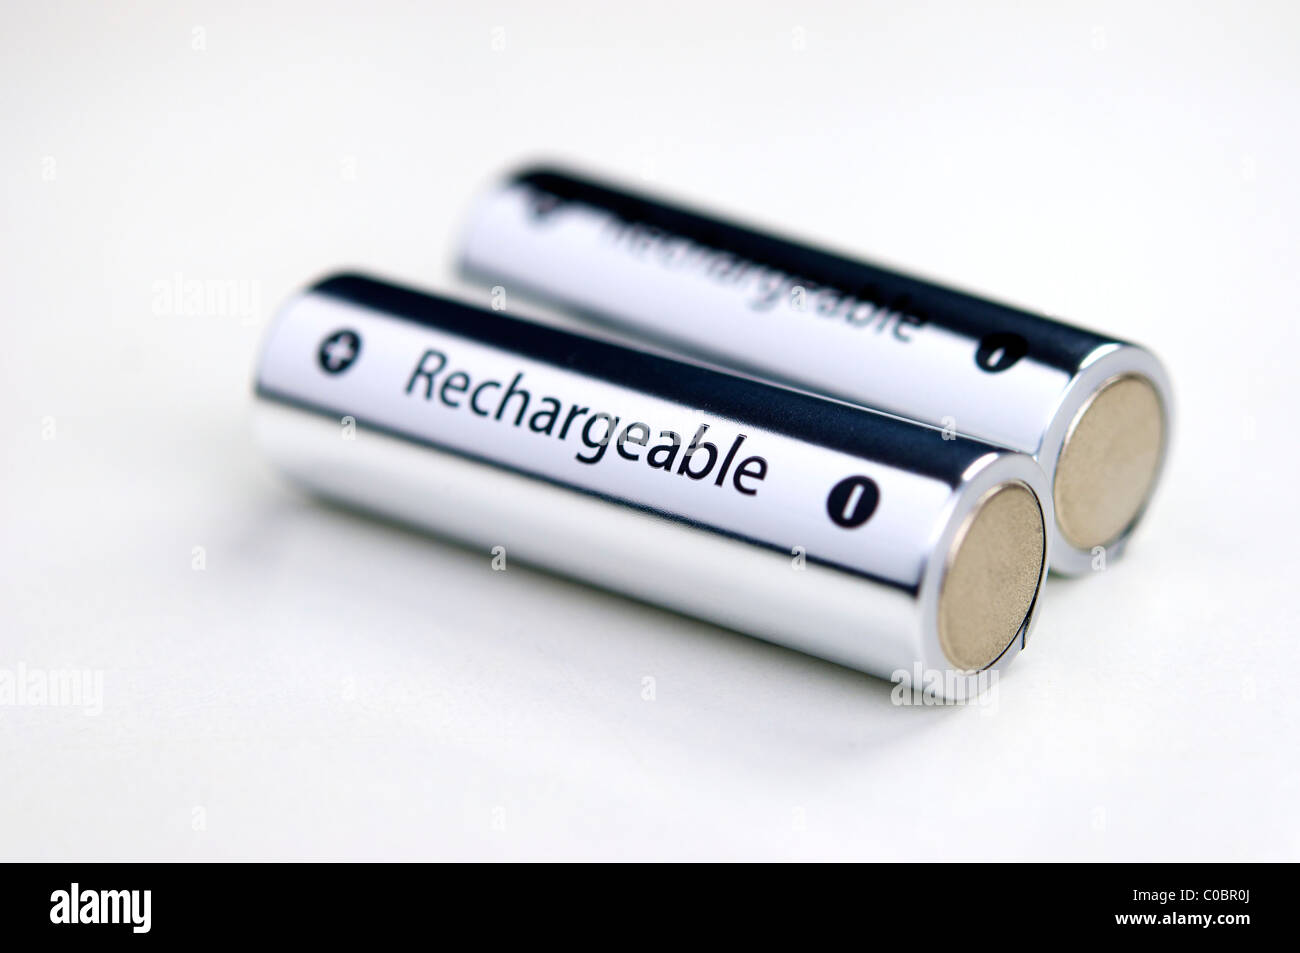 Two rechargeable batteries. - Stock Image